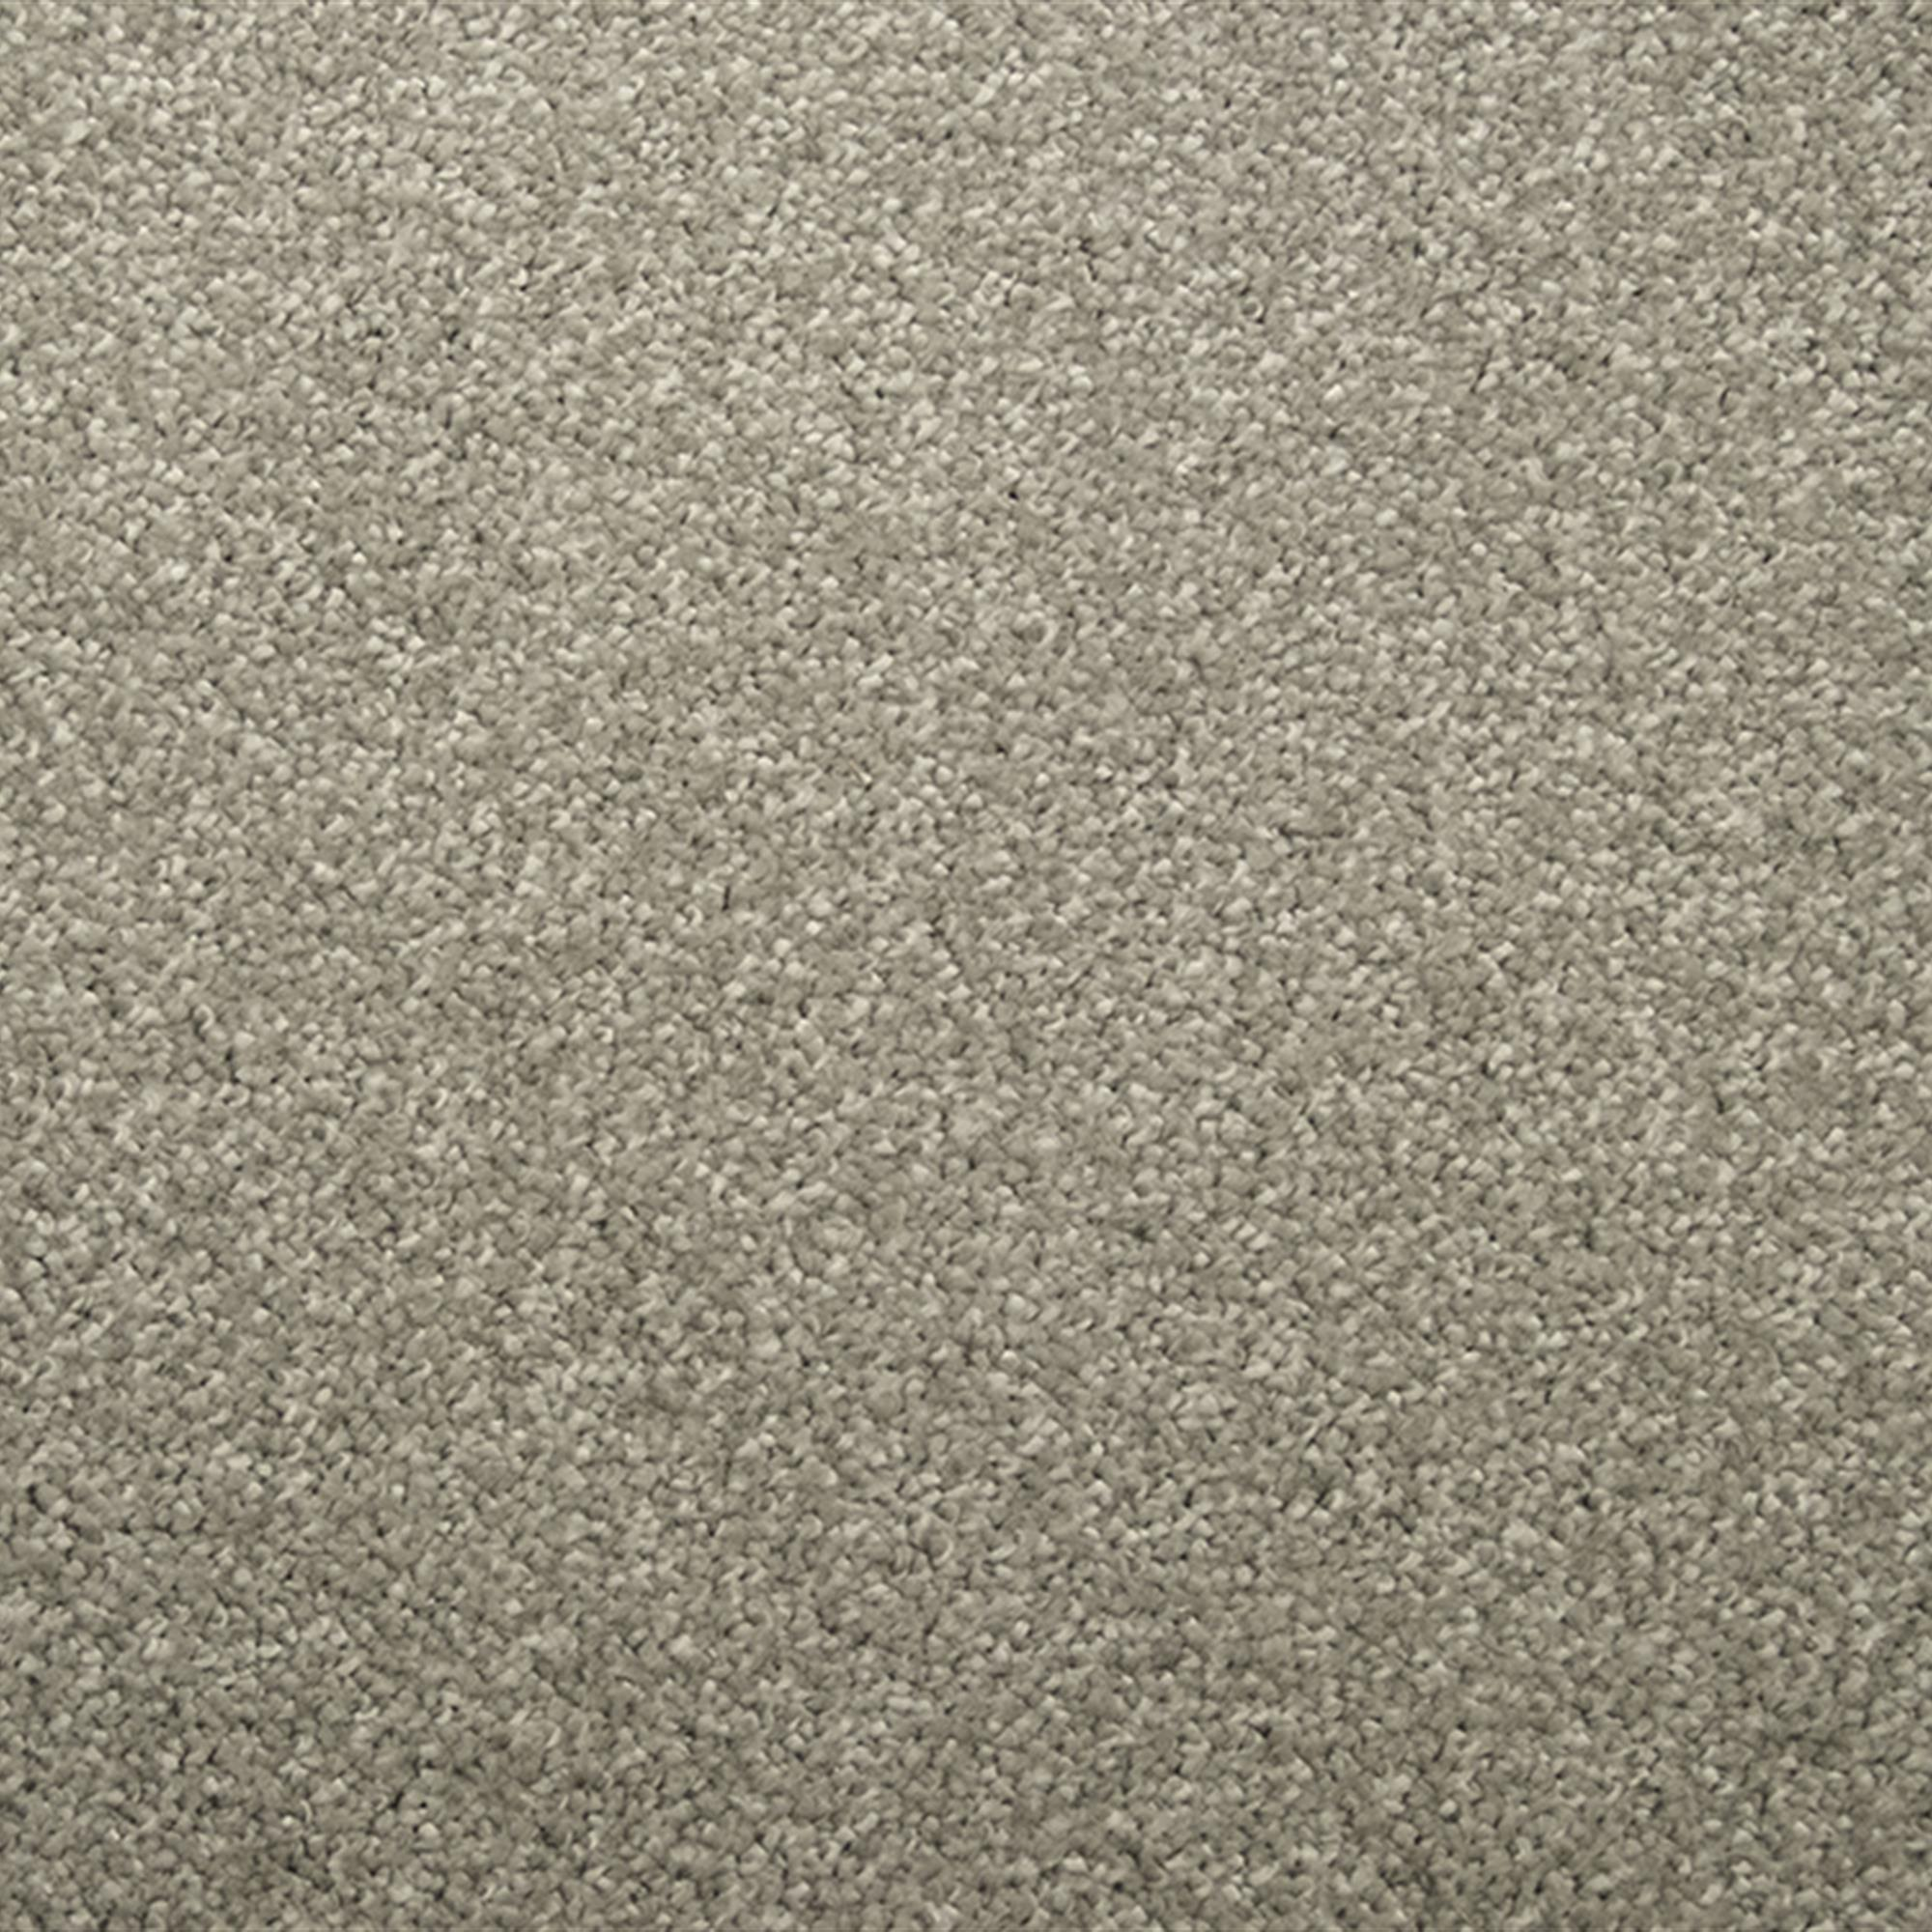 Signature Eloquence Carpet, 935 Cloud, swatch